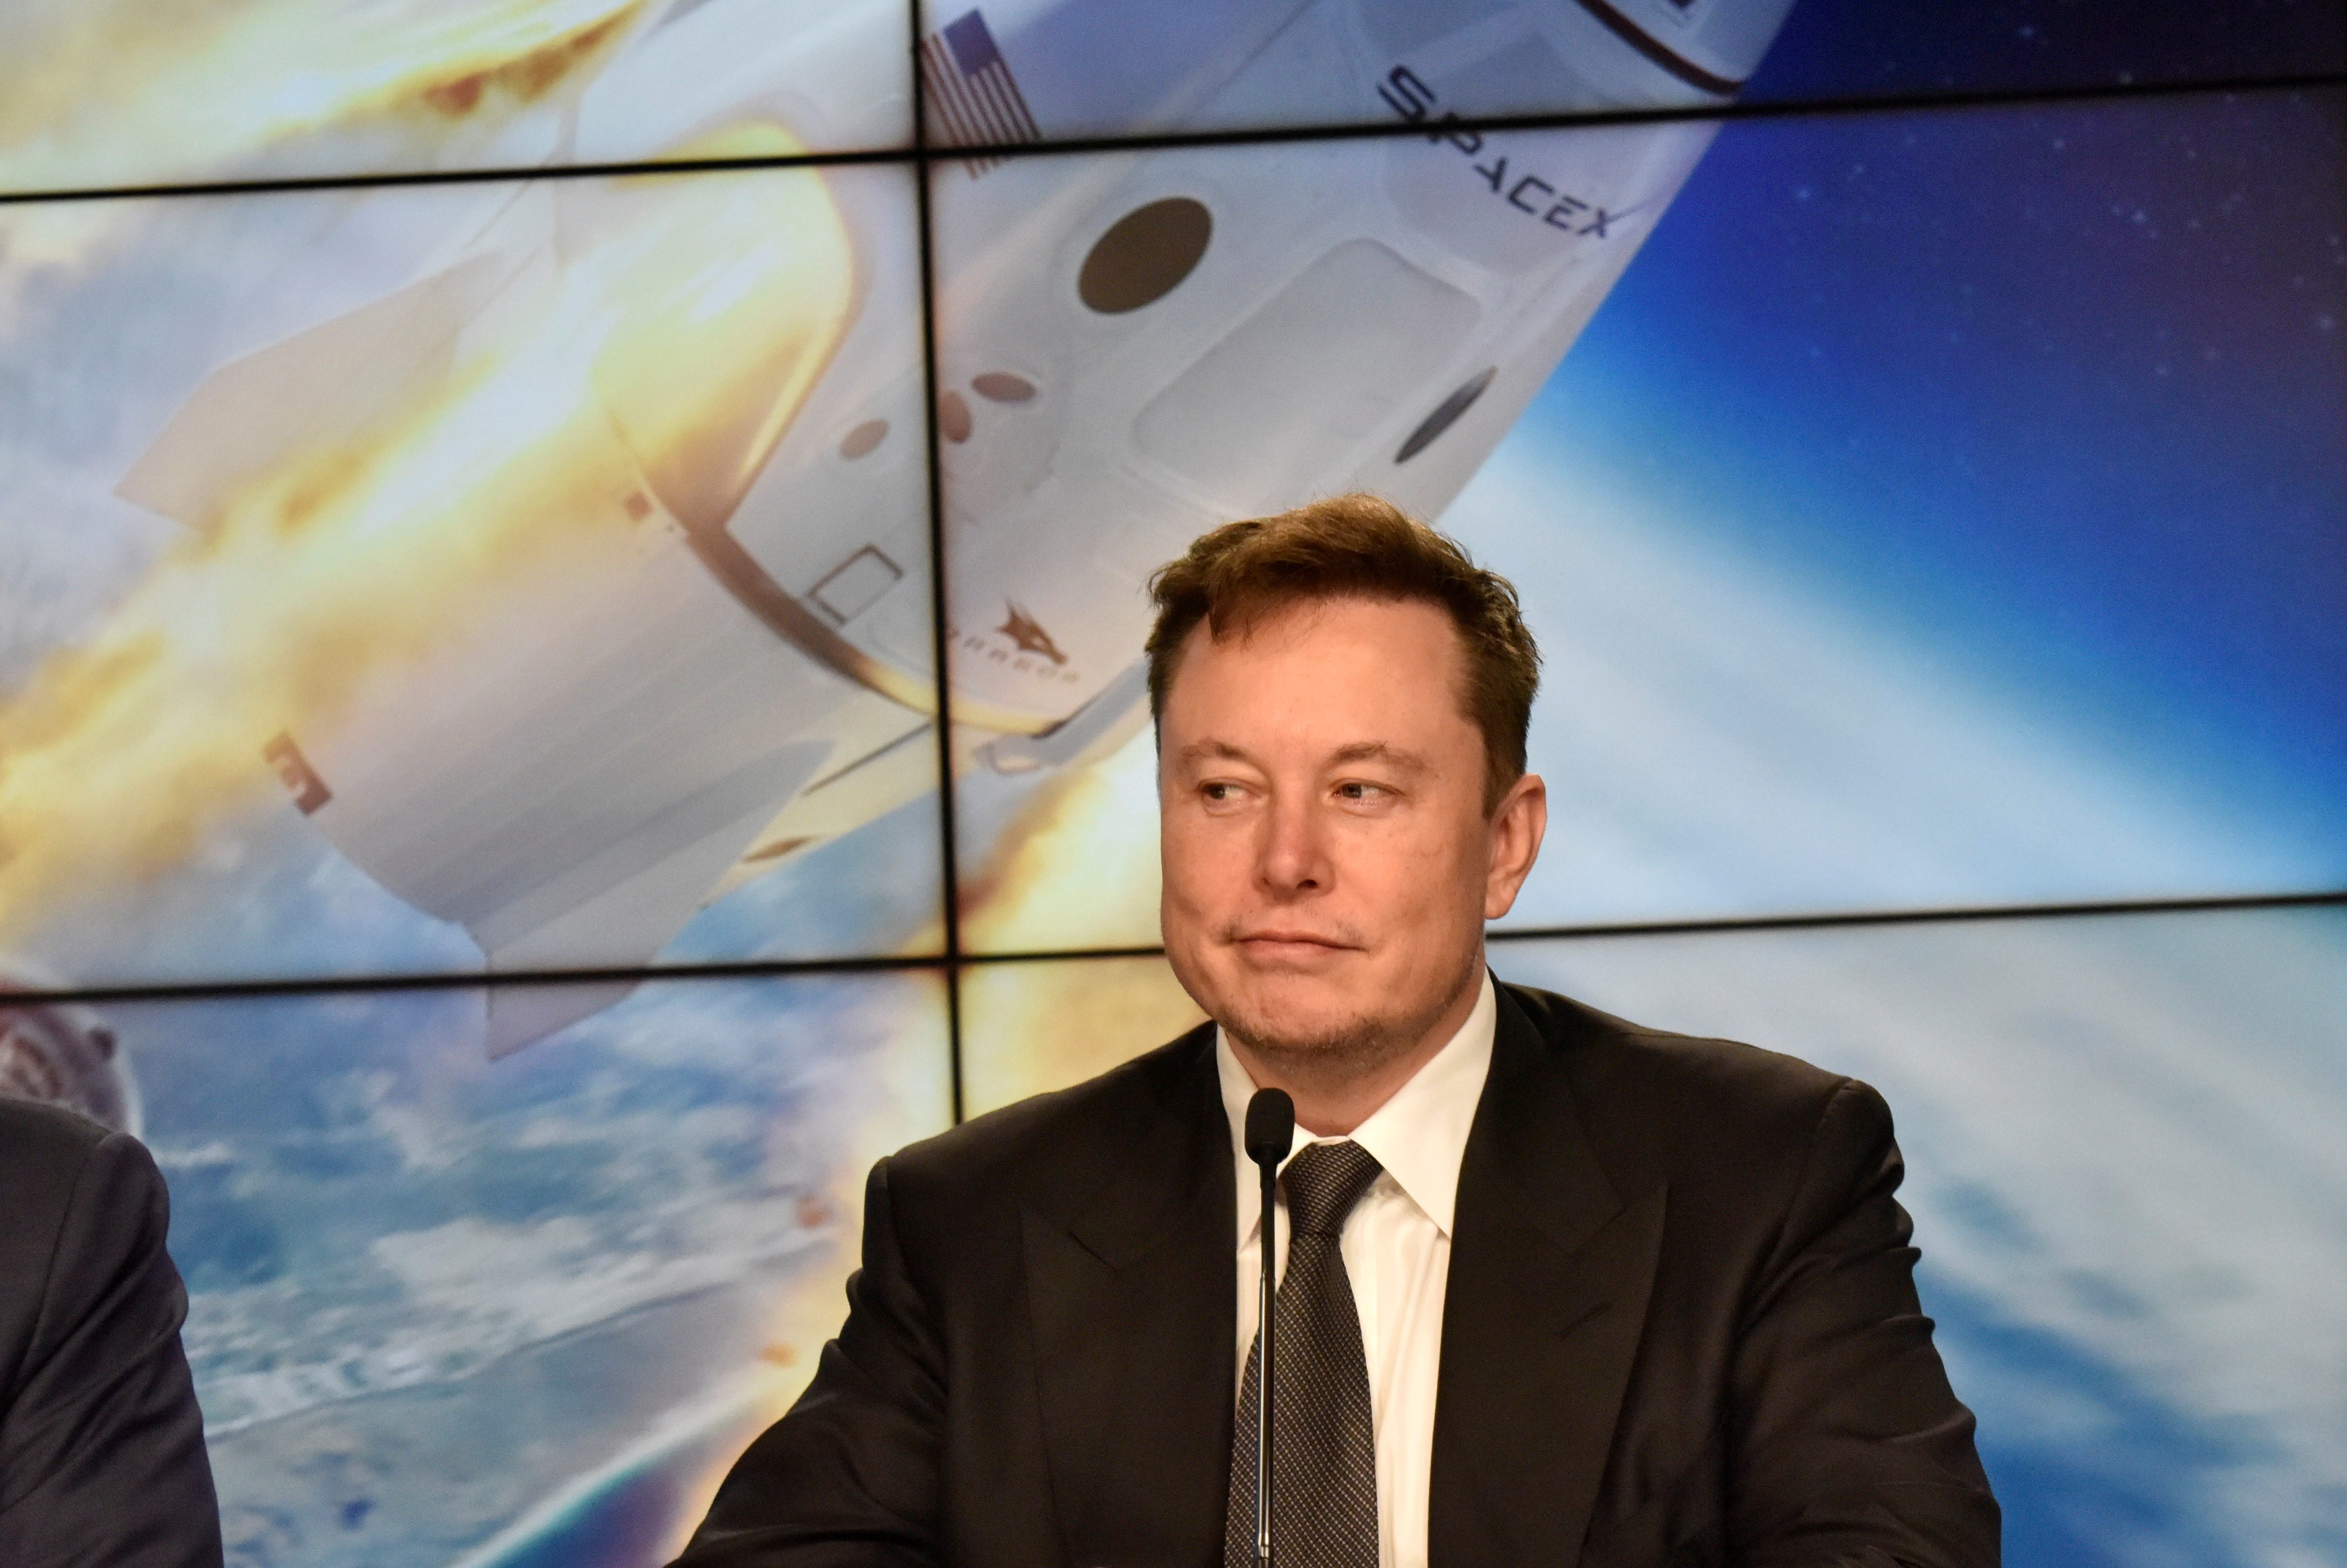 SpaceX founder and chief engineer Elon Musk attends a news conference at the Kennedy Space Center in Cape Canaveral, Florida, U.S., Janu. 19, 2020. REUTERS/Steve Nesius